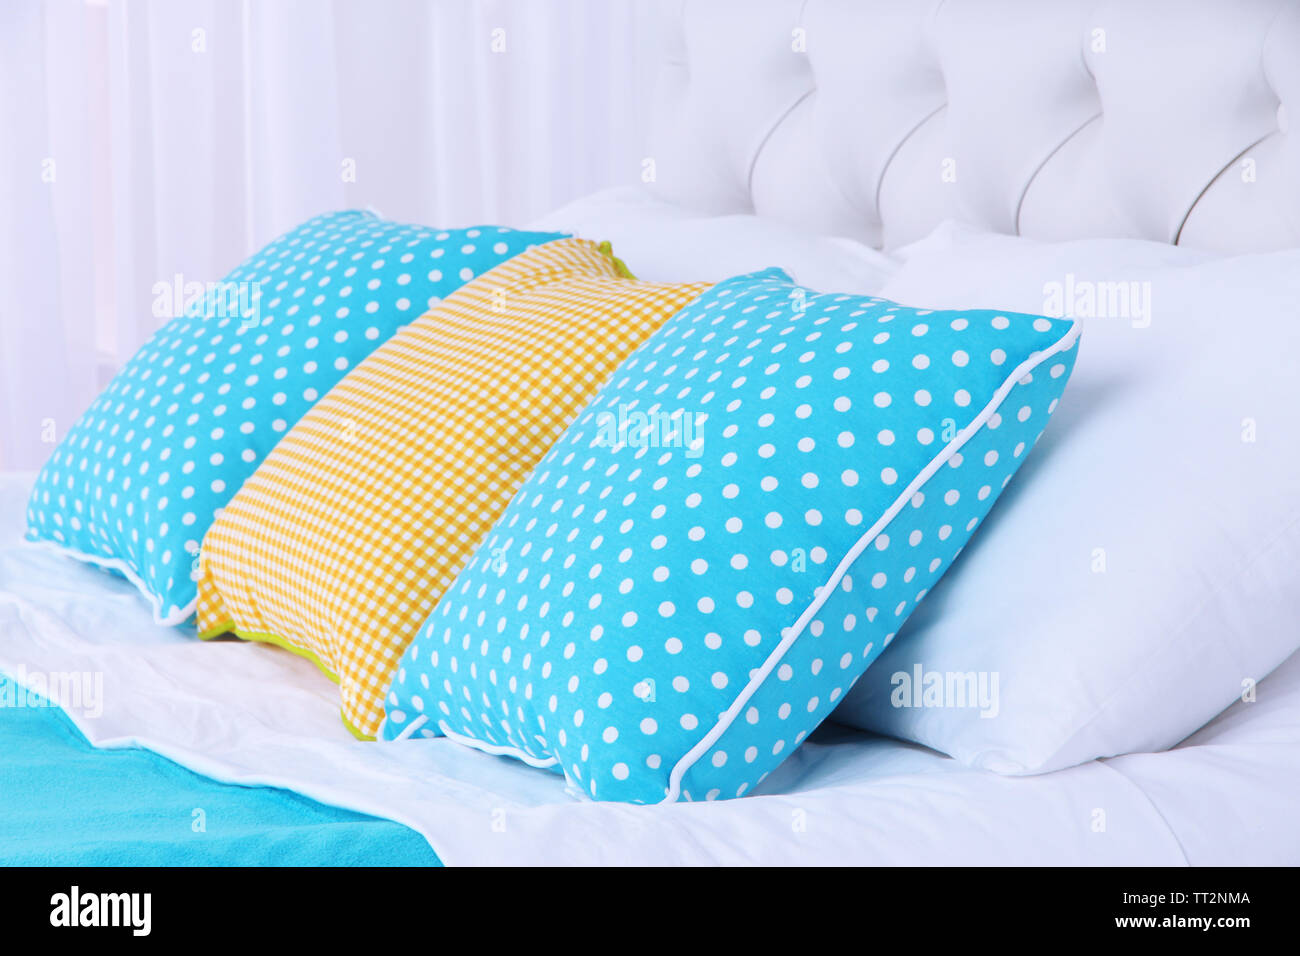 Comfortable soft bed with pillows - Stock Image